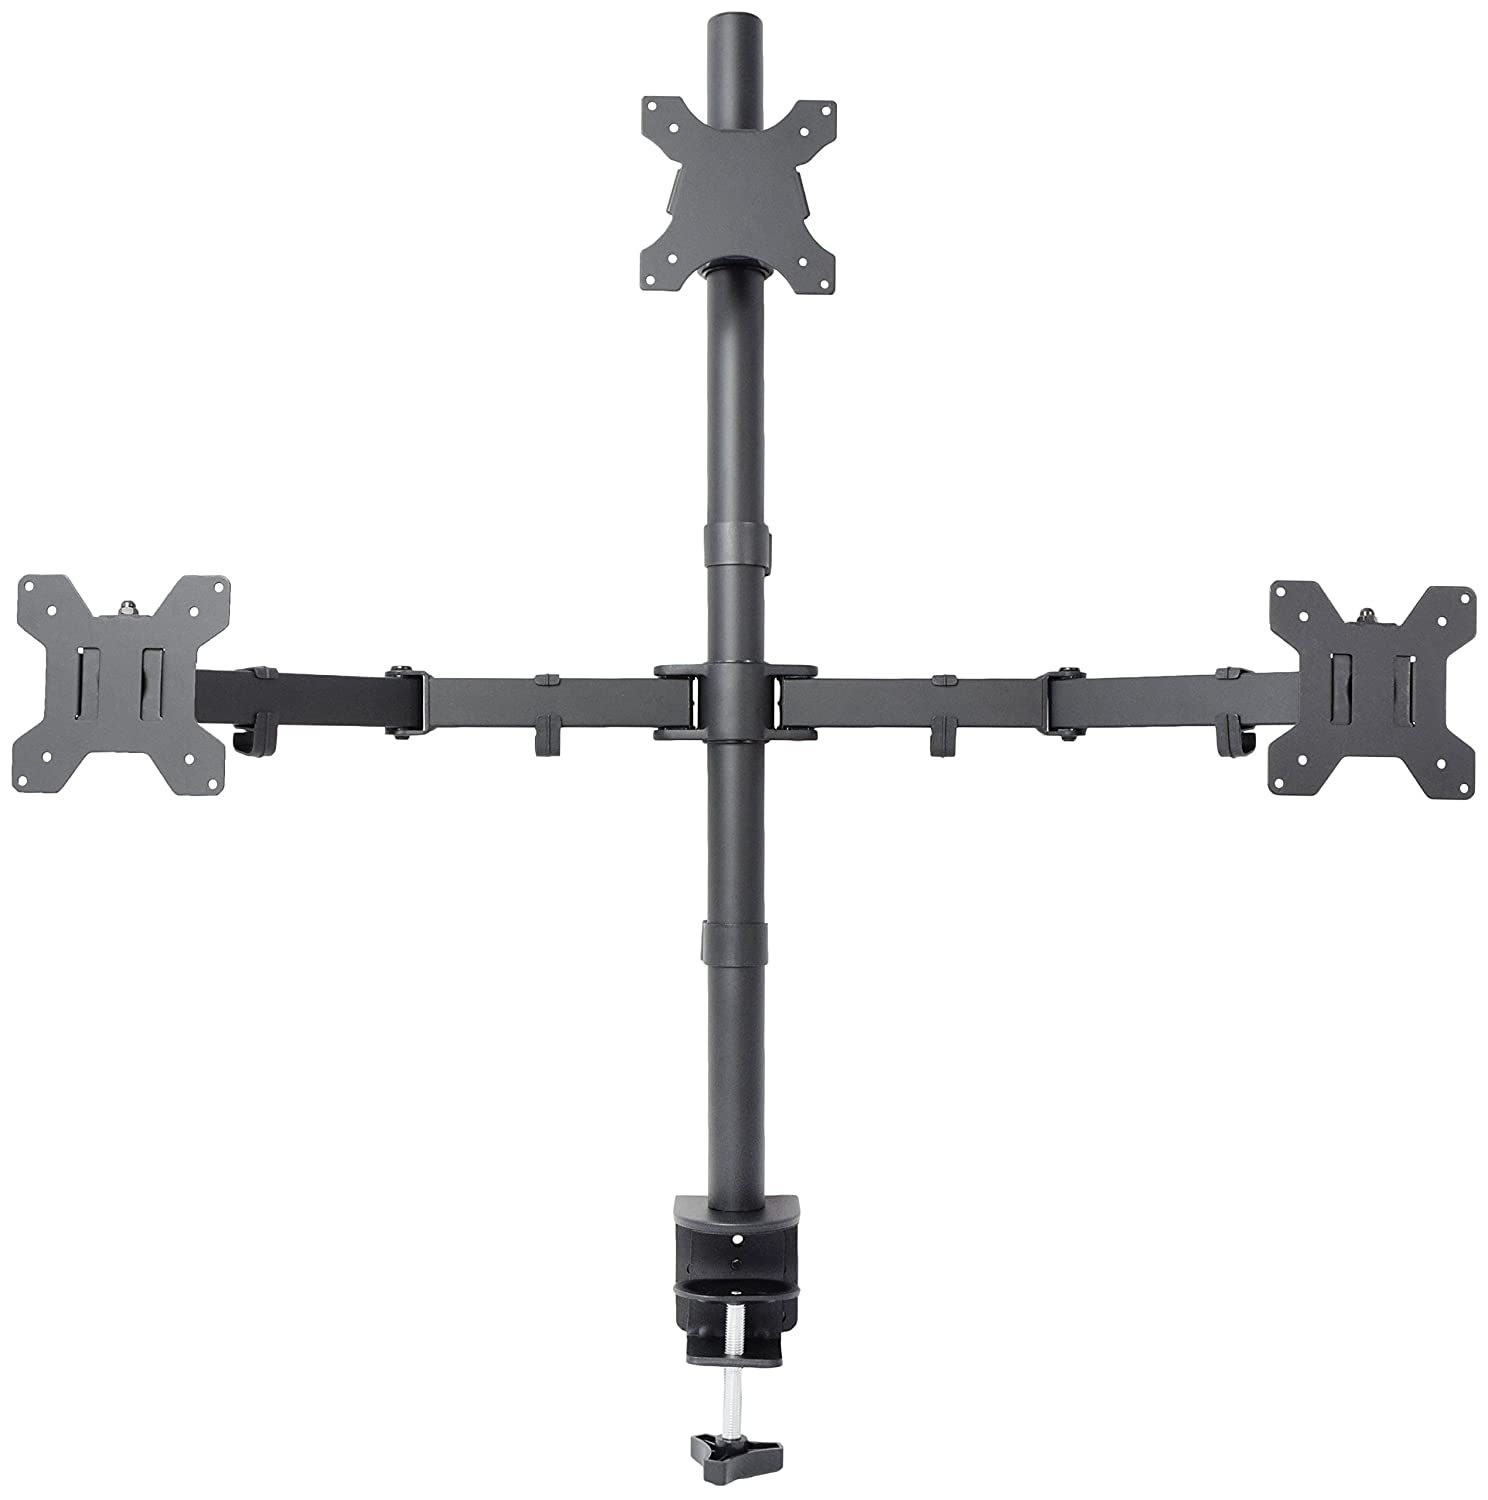 Amazon com vivo triple lcd monitor desk mount stand heavy duty fully - Amazon Com Vivo Triple Lcd Monitor Desk Mount Stand Heavy Duty Fully Adjustable 3 Screens Up To 27 Stand V003t Computers Accessories